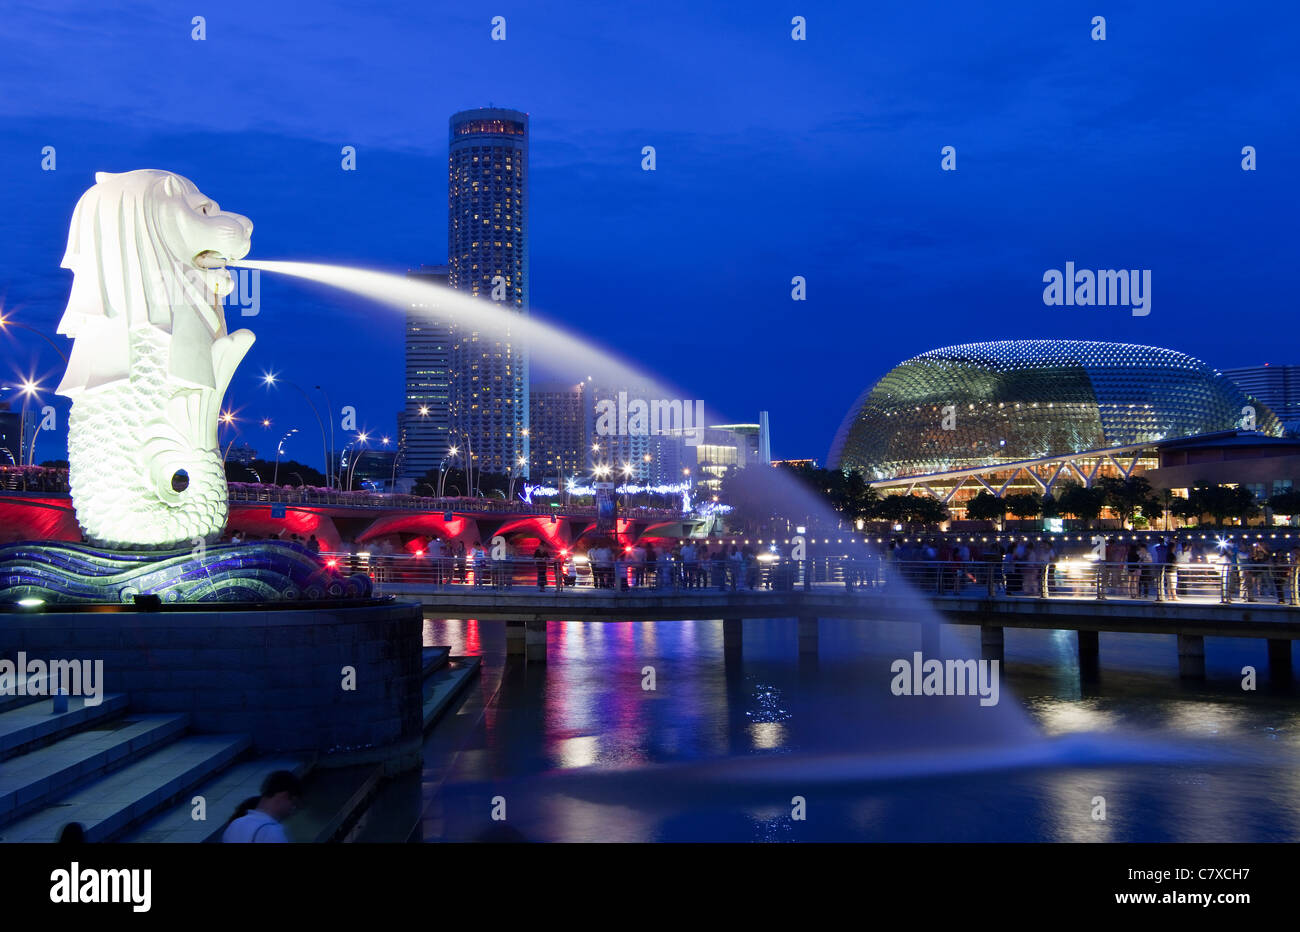 The Merlion Statue, Singapore - Stock Image